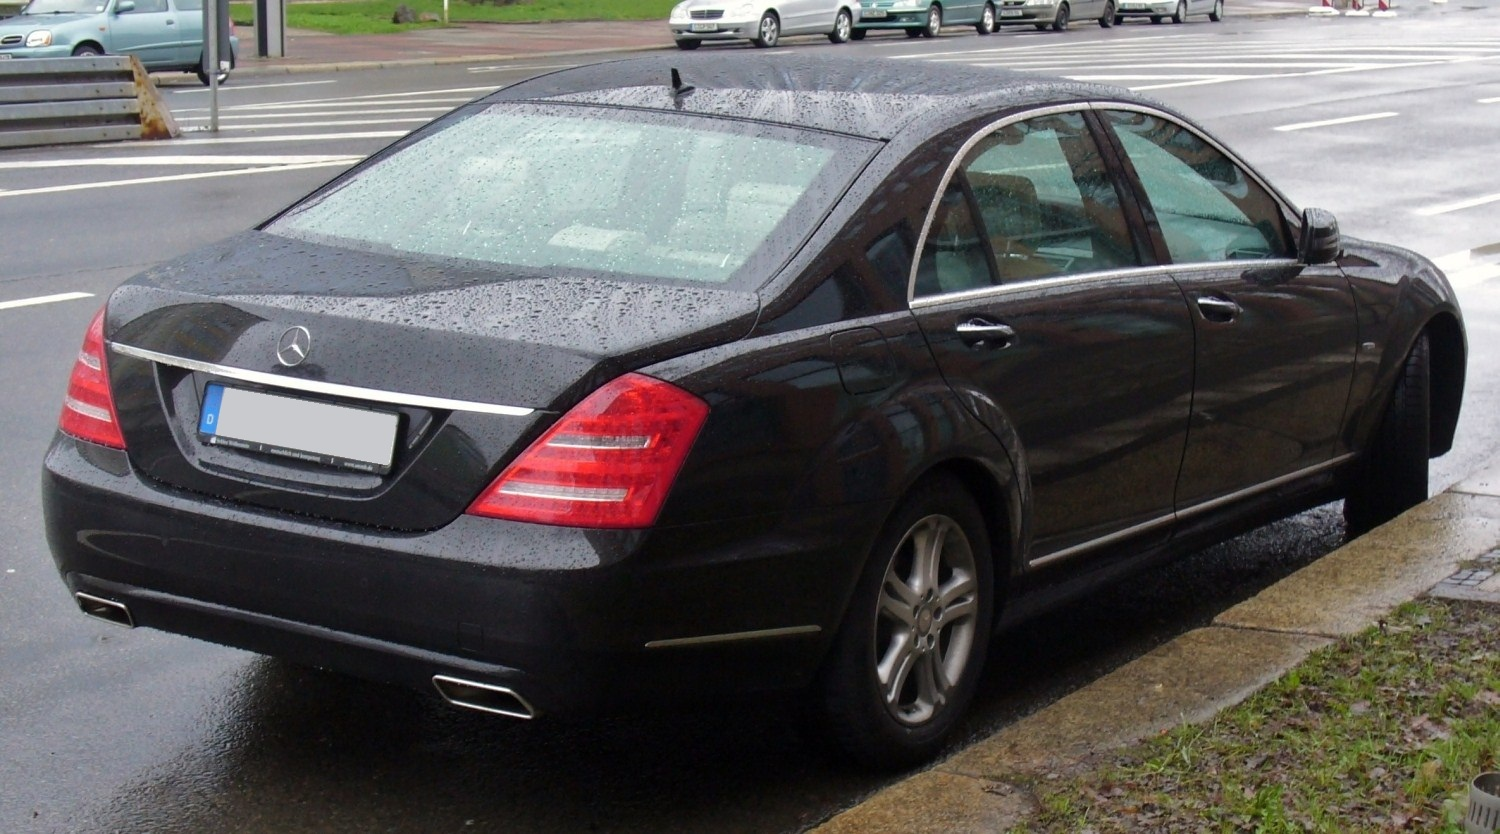 File:Mercedes-Benz W221 Facelift Heck.JPG - Wikimedia Commons